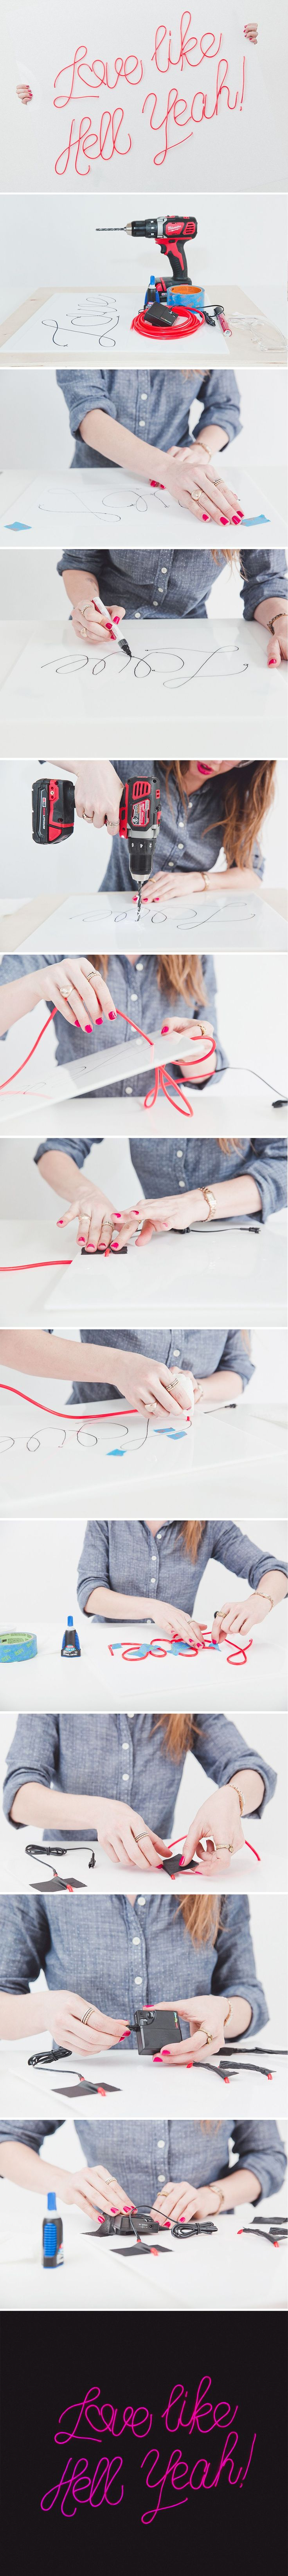 diy neon sign tutorial